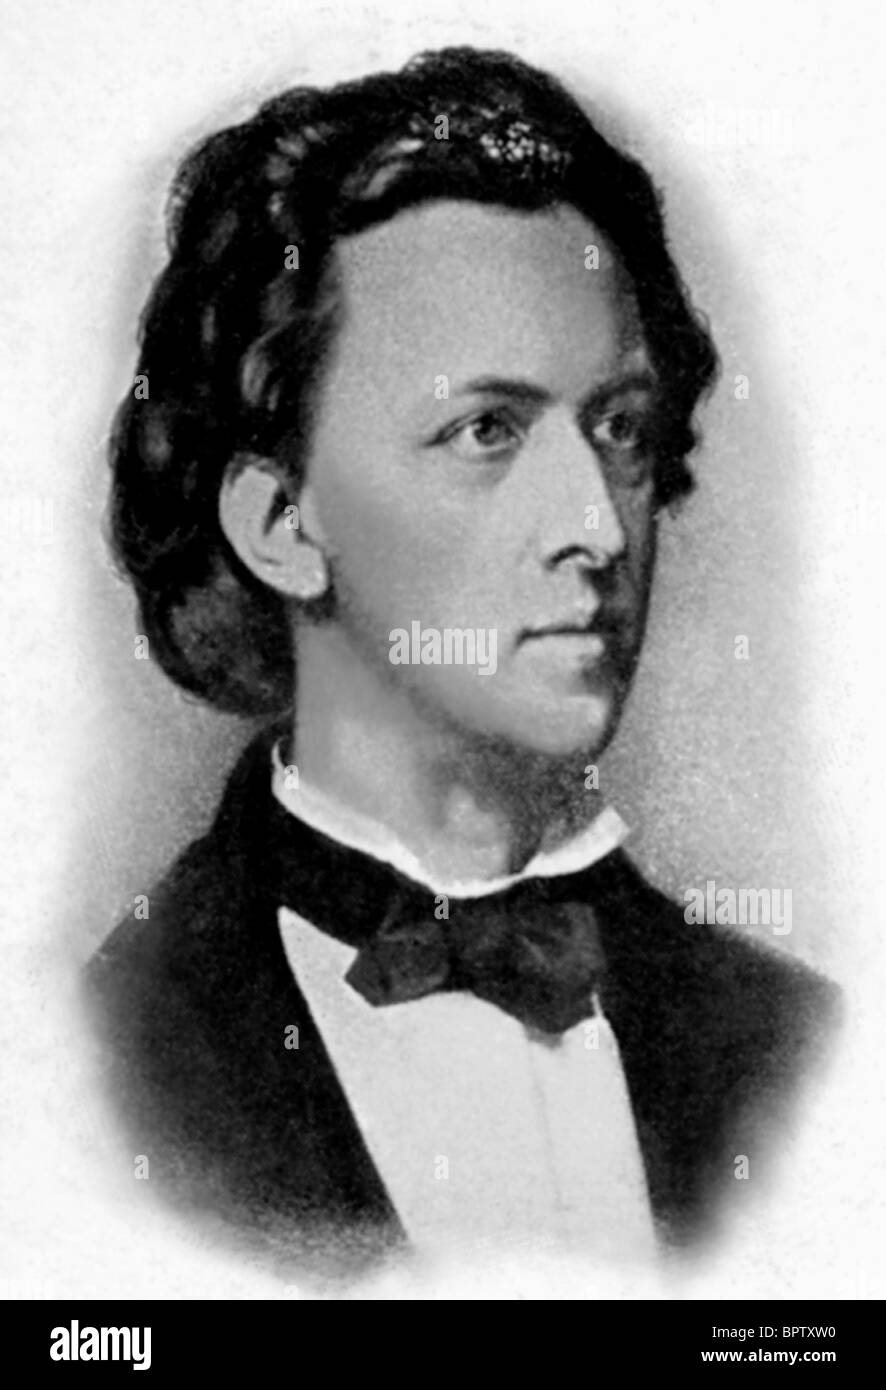 FREDERIC CHOPIN MUSIC COMPOSER (1938) - Stock Image